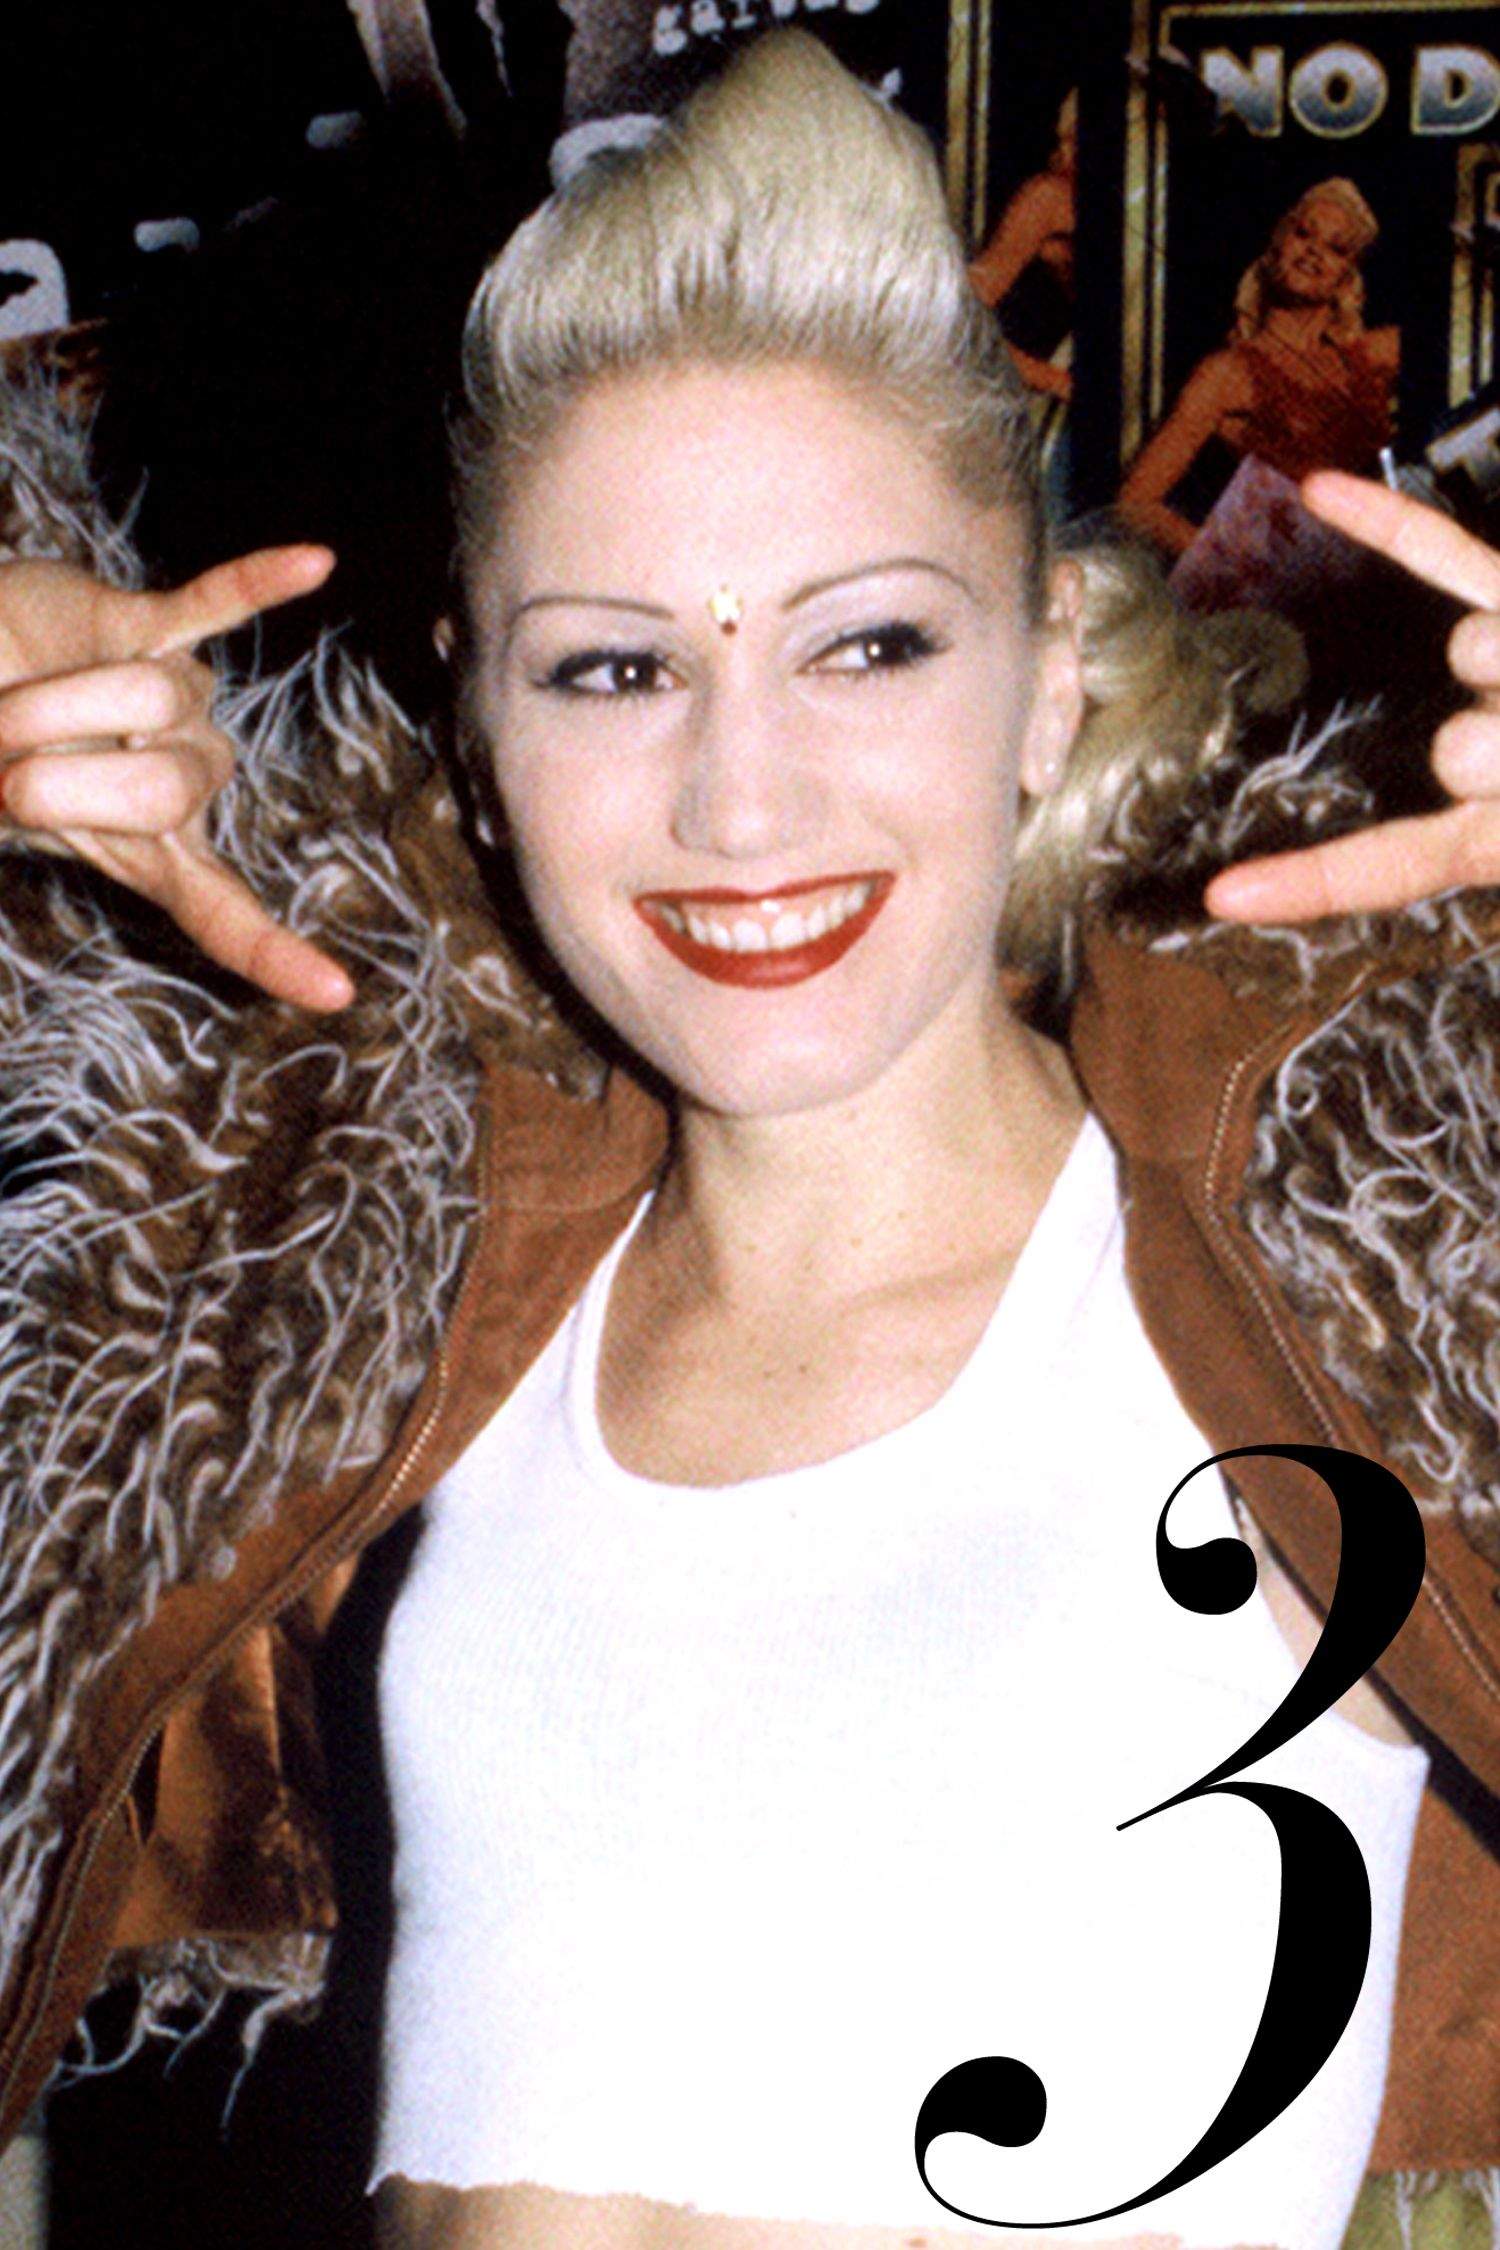 BERKELY, CA - DECEMBER 15: Gwen Stefani of No Doubt backstage at the Berkely Community Theater on December 15, 1995 in Berkely, California. (Photo by Tim Mosenfelder/Getty Images)